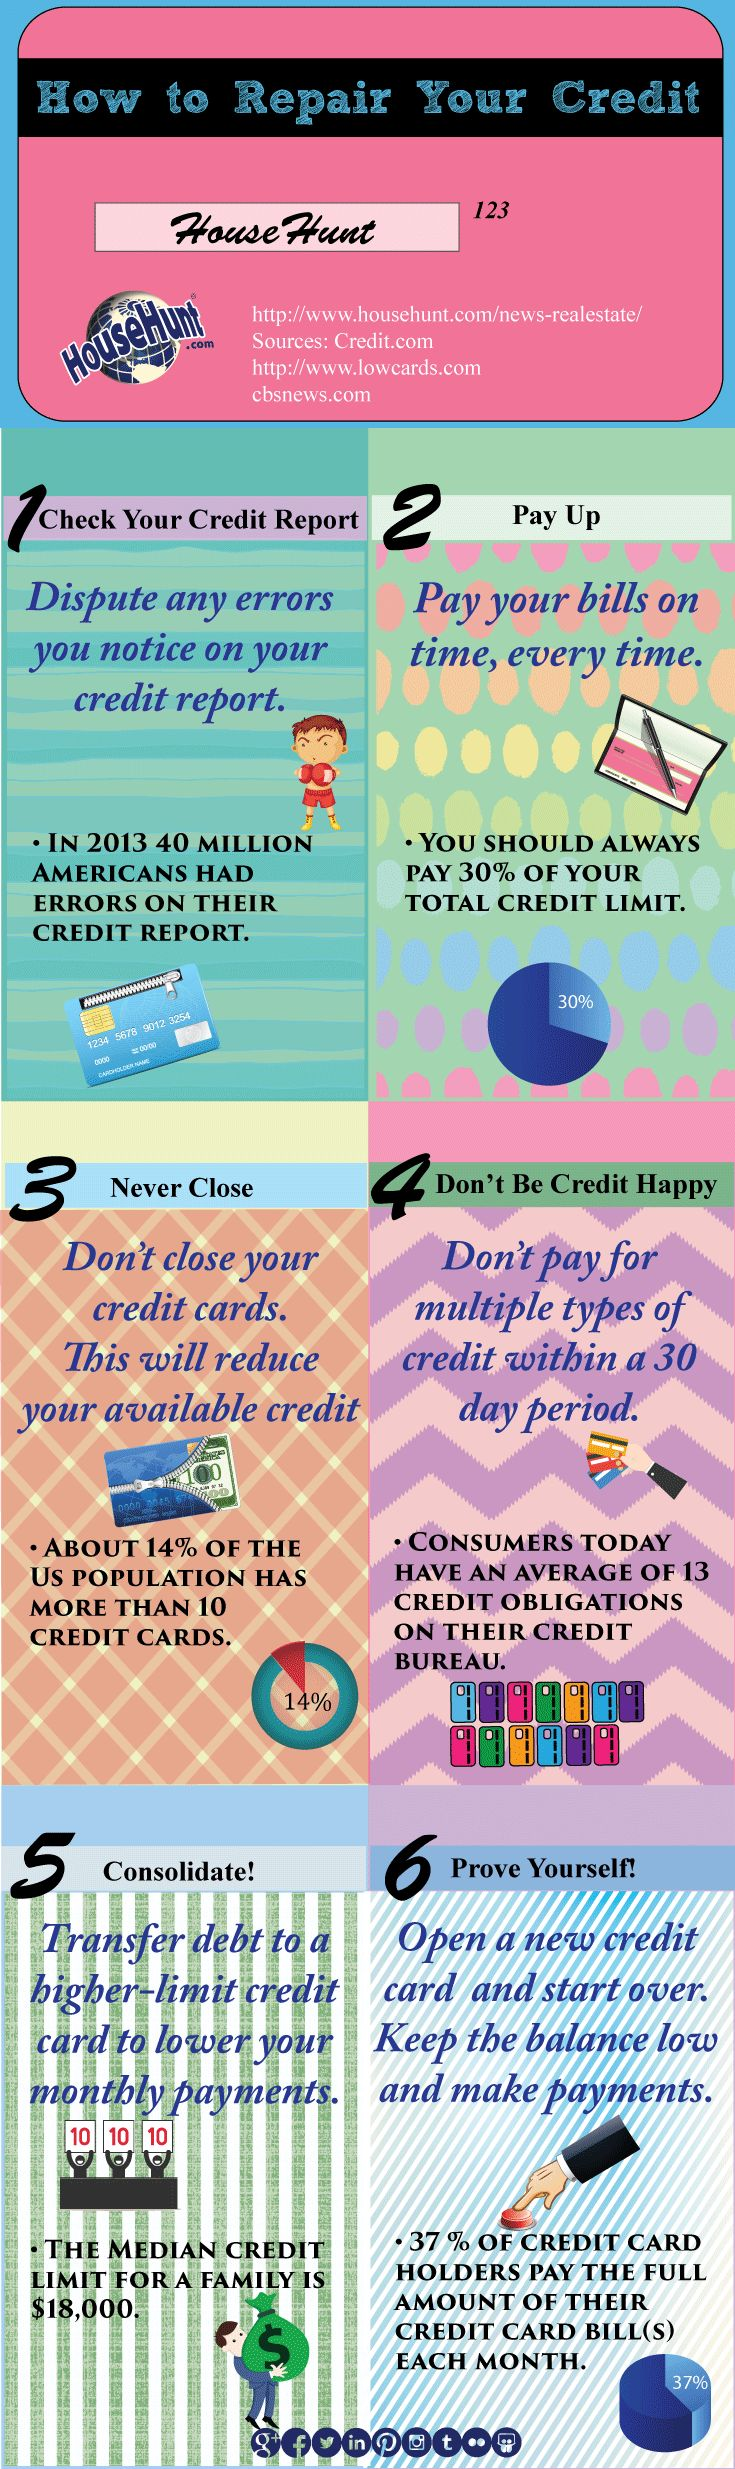 111 best credit repair images on pinterest personal finance how to repair your credit infographic creditrepair altavistaventures Choice Image